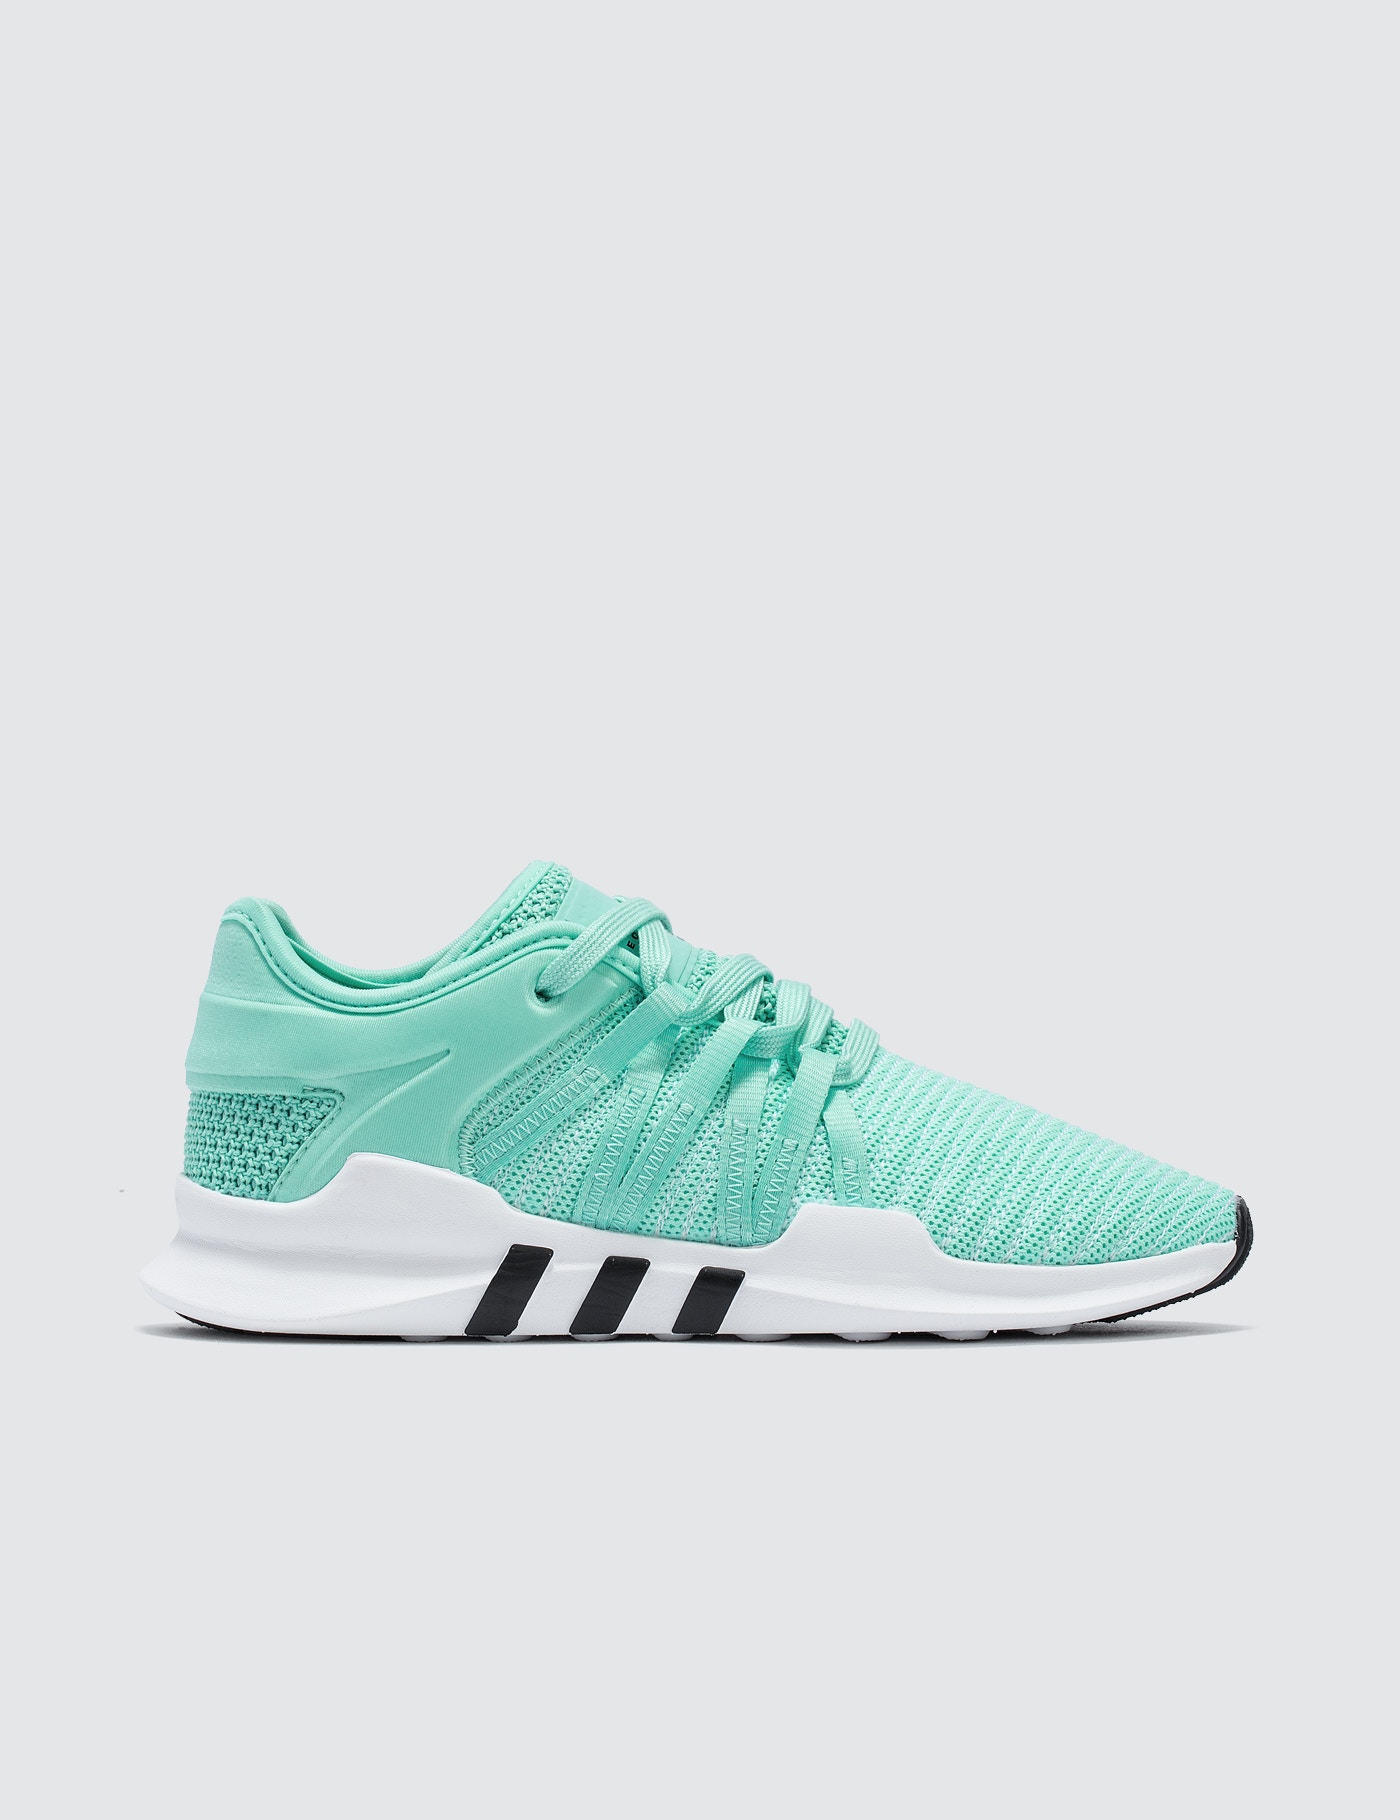 reputable site 23f9d 6f2eb EQT Racing Adv W, Adidas Originals